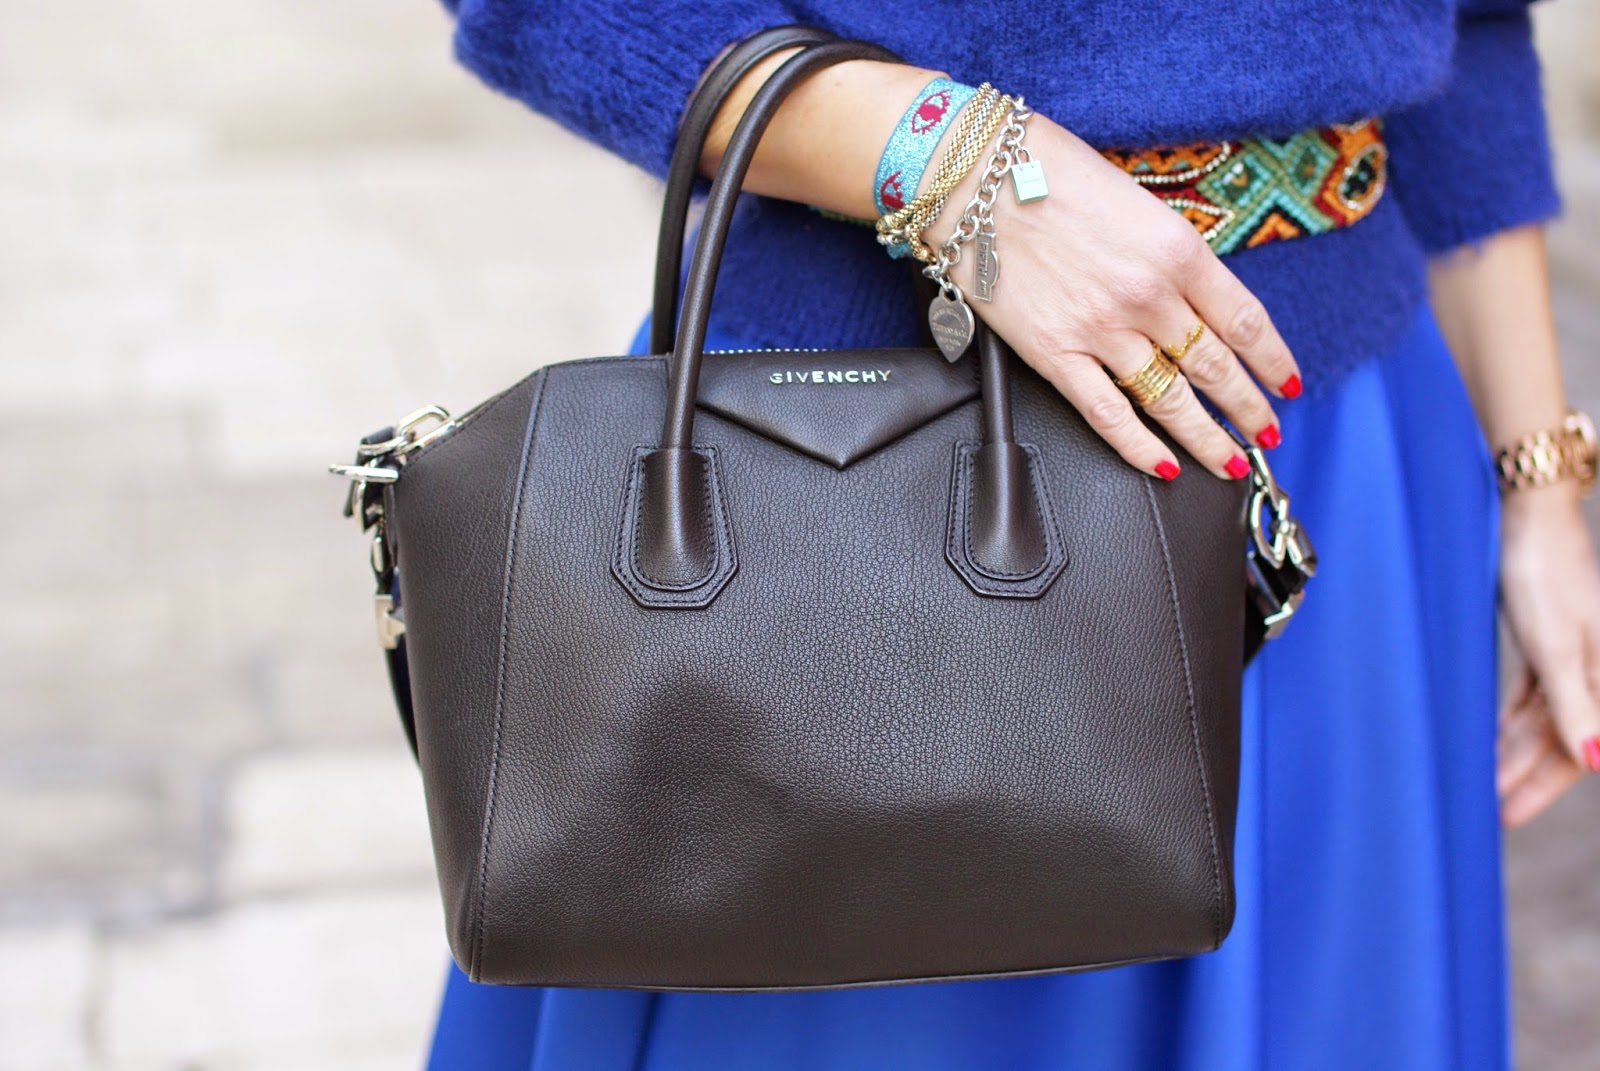 Givenchy Antigona bag black in small size, Fashion and Cookies, fashion blogger